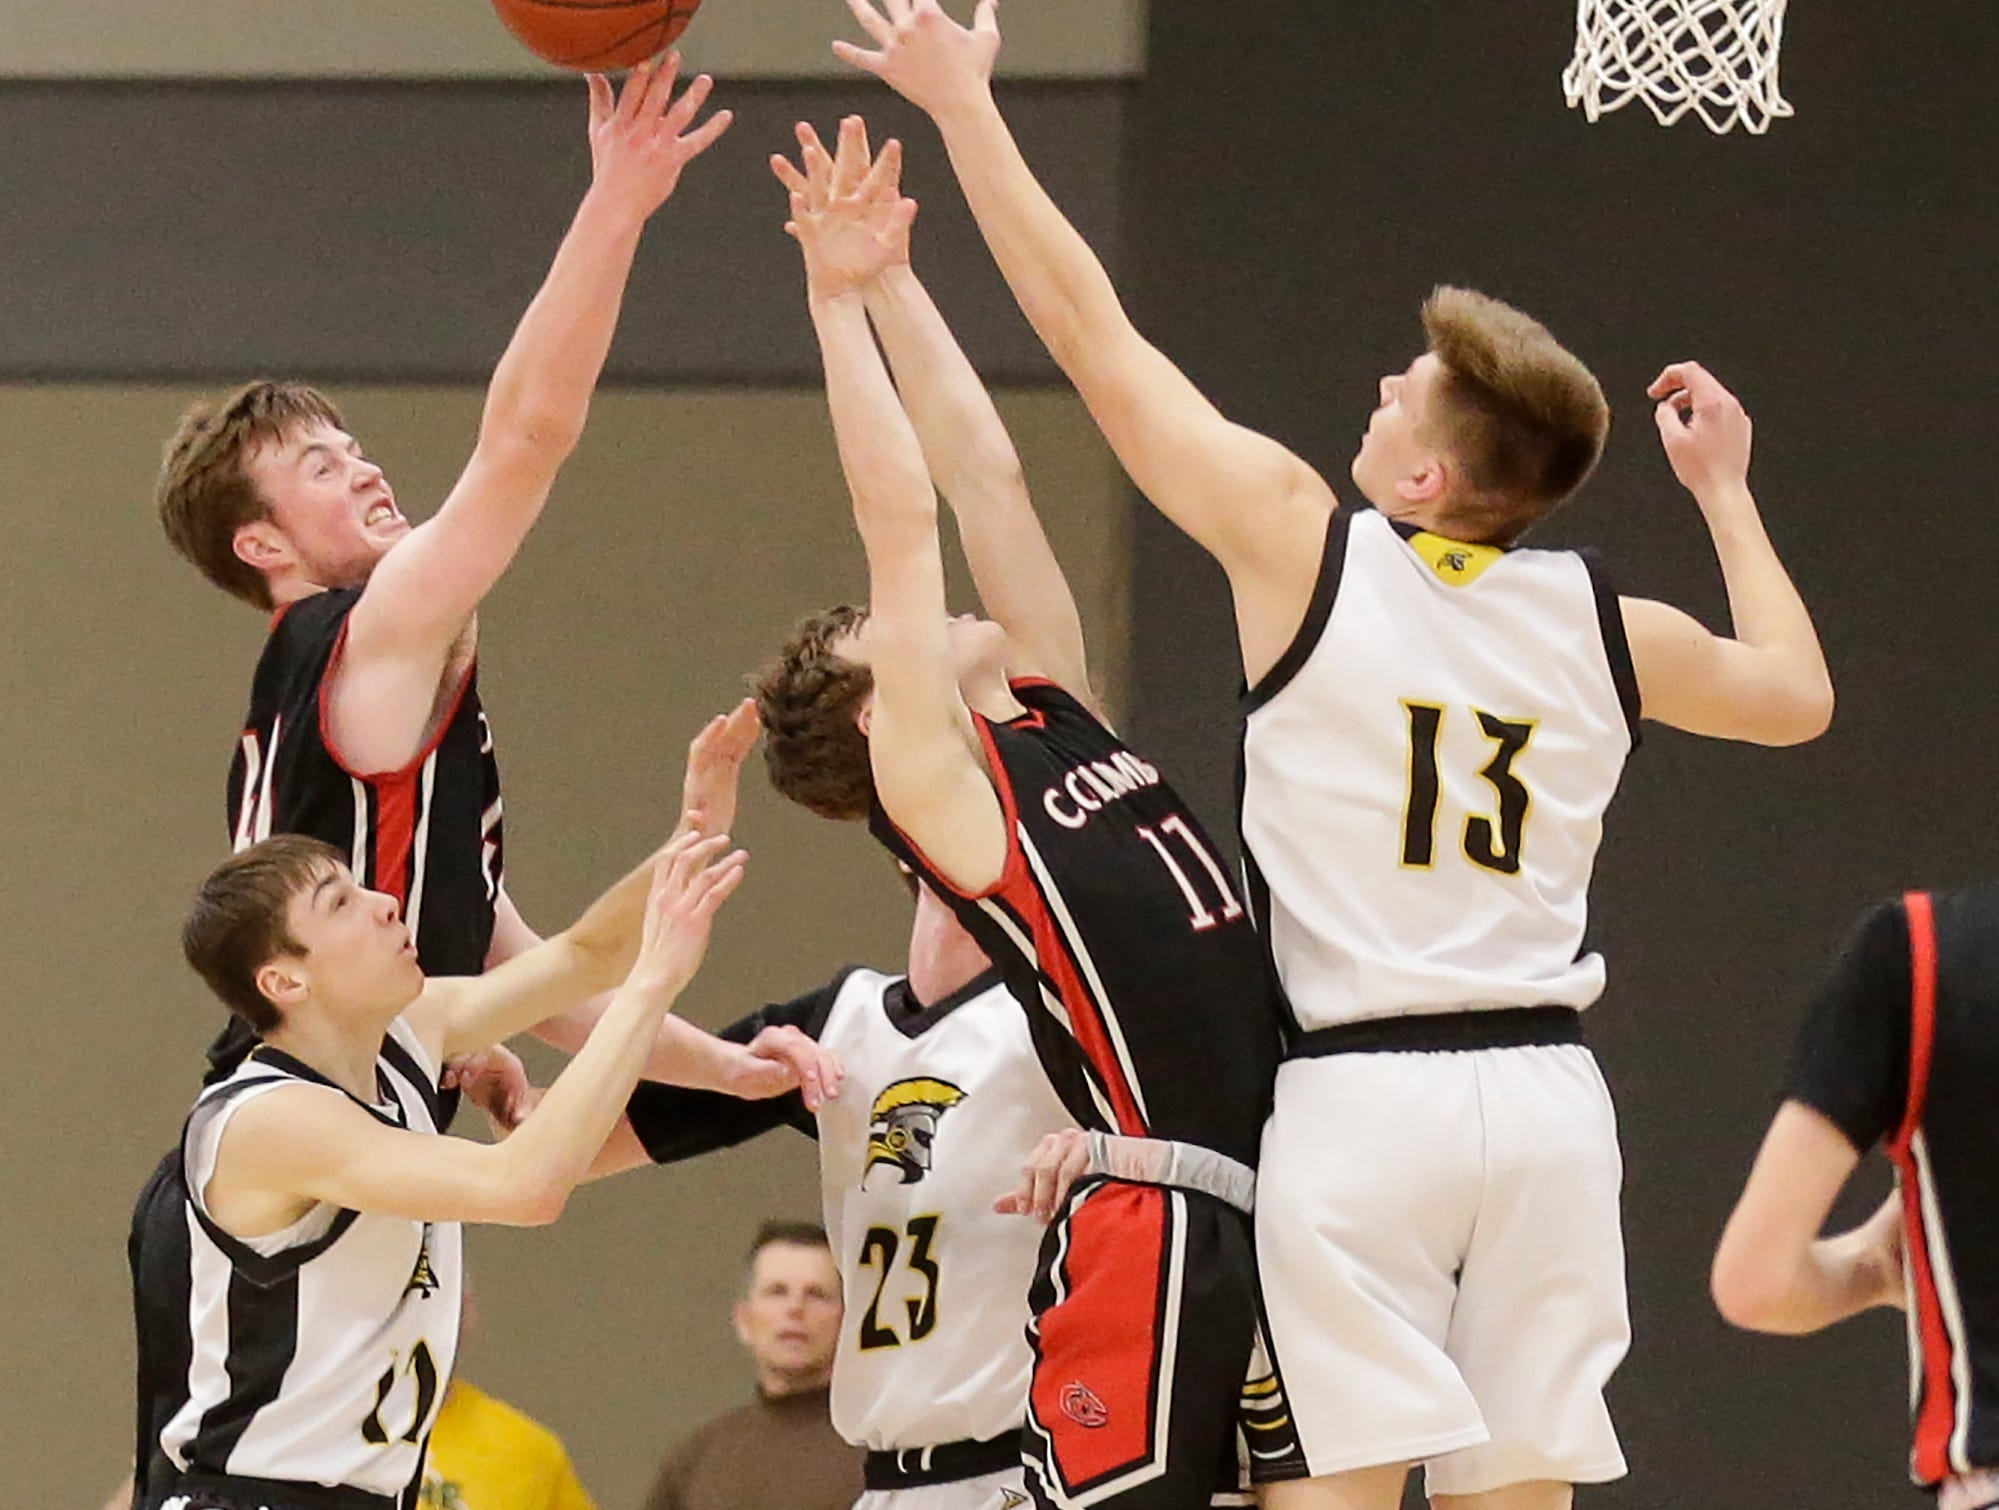 Waupun High School boys basketball's Gabe Keach (21) Reece Homan (23) and Conner Kamphuis (13) battle for a rebound with Columbus High School's Teagan Herschleb (21) and Alex Campbell (11) during their WIAA division 3 sectional semi-final game Thursday, March 7, 2019 in Beaver Dam, Wis. Waupun won the game 79-36. Doug Raflik/USA TODAY NETWORK-Wisconsin